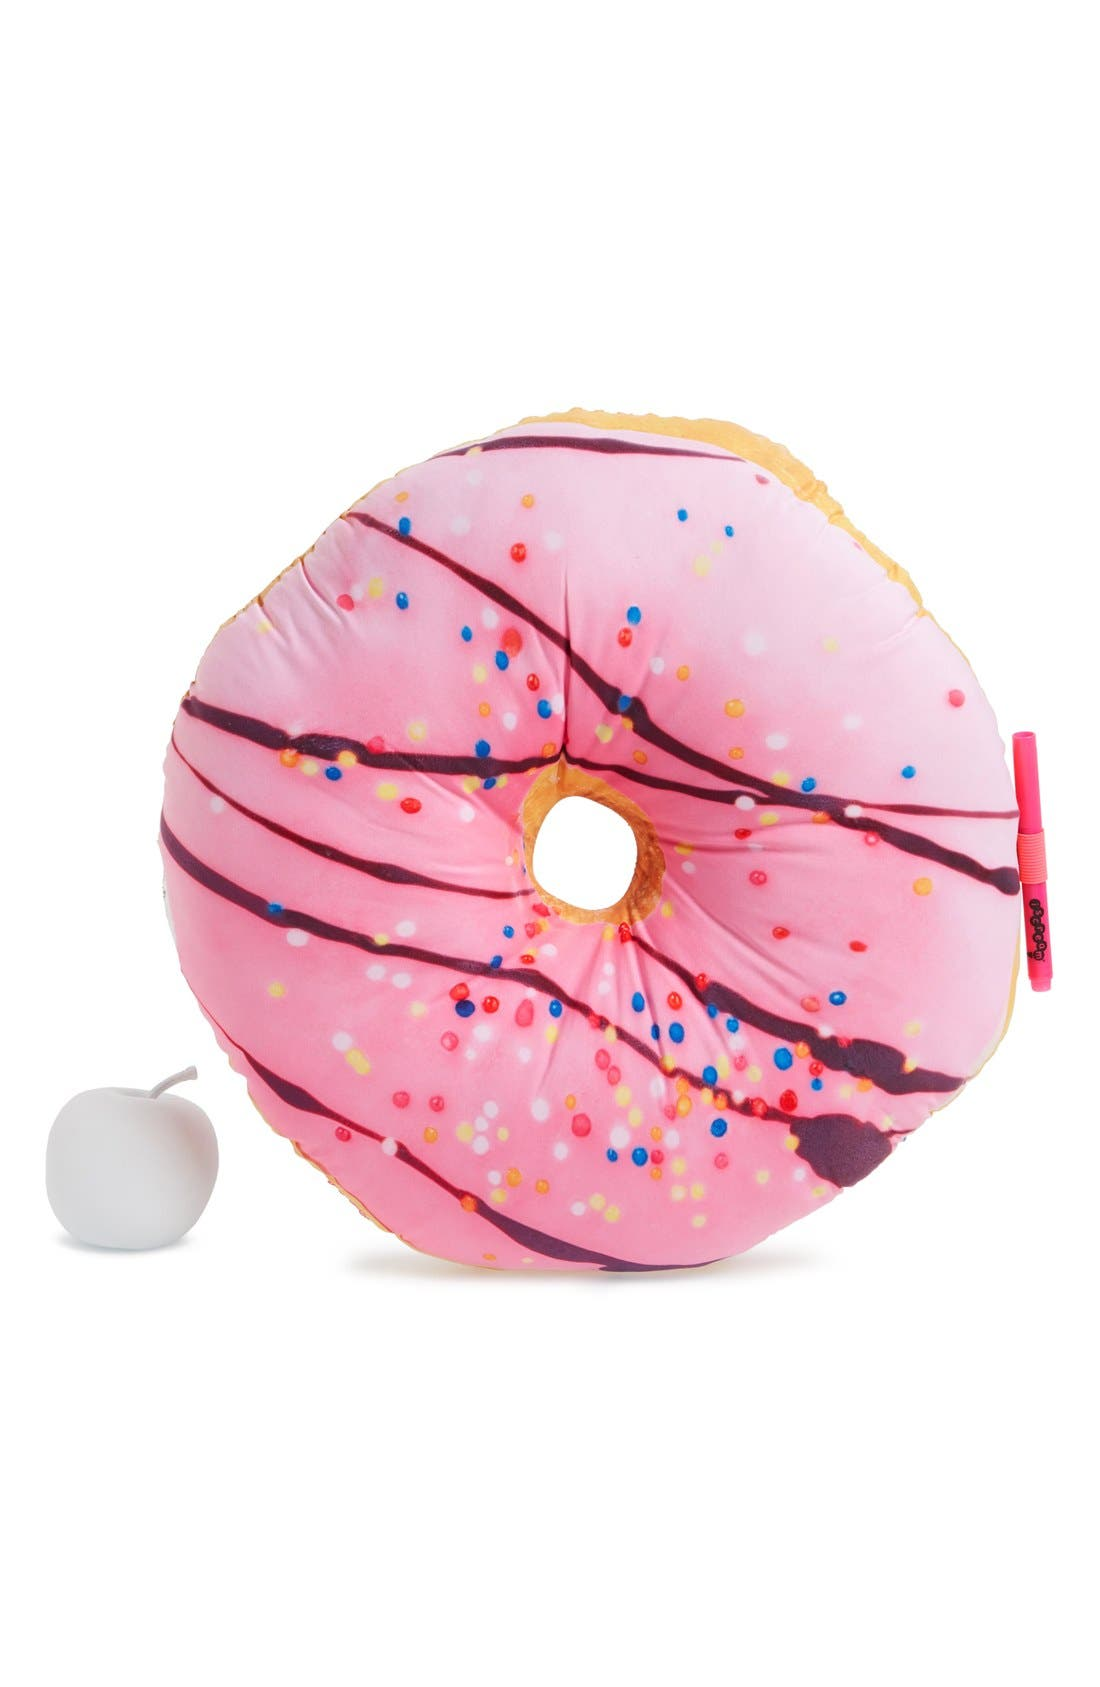 Alternate Image 1 Selected - Iscream Rainbow Sprinkles Donut Scented Autograph Pillow